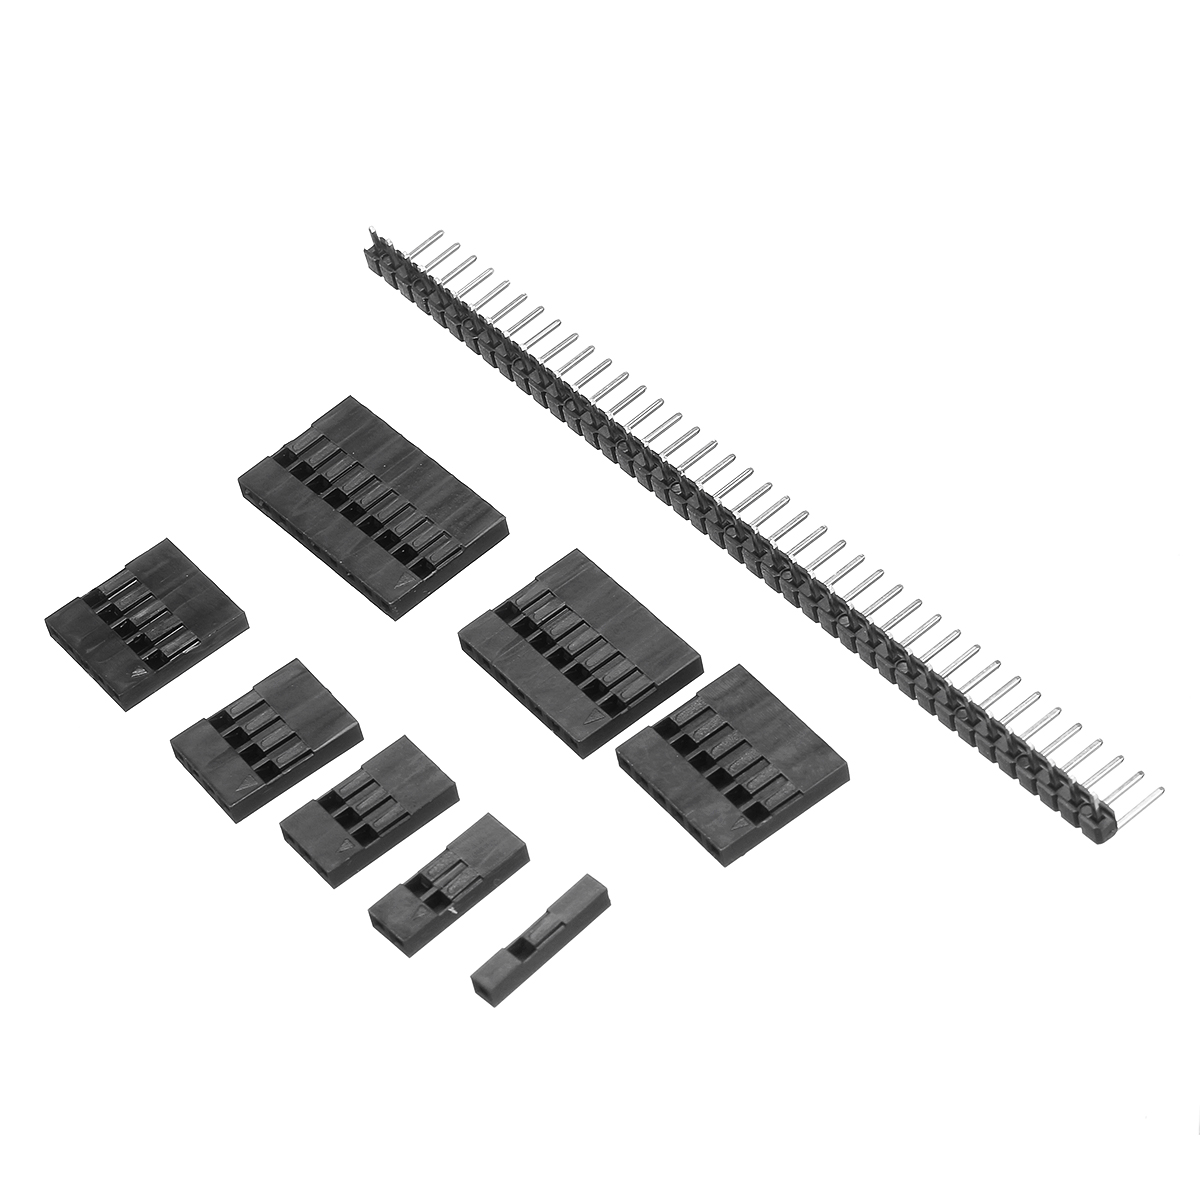 635Pcs Dupont Connector Housing Male/Female Pin Connector 40 Pin 2.54mm Pitch Pin Headers and 10 Wire Rainbow Color Flat Ribbon IDC Wire Cable Assortment Kit